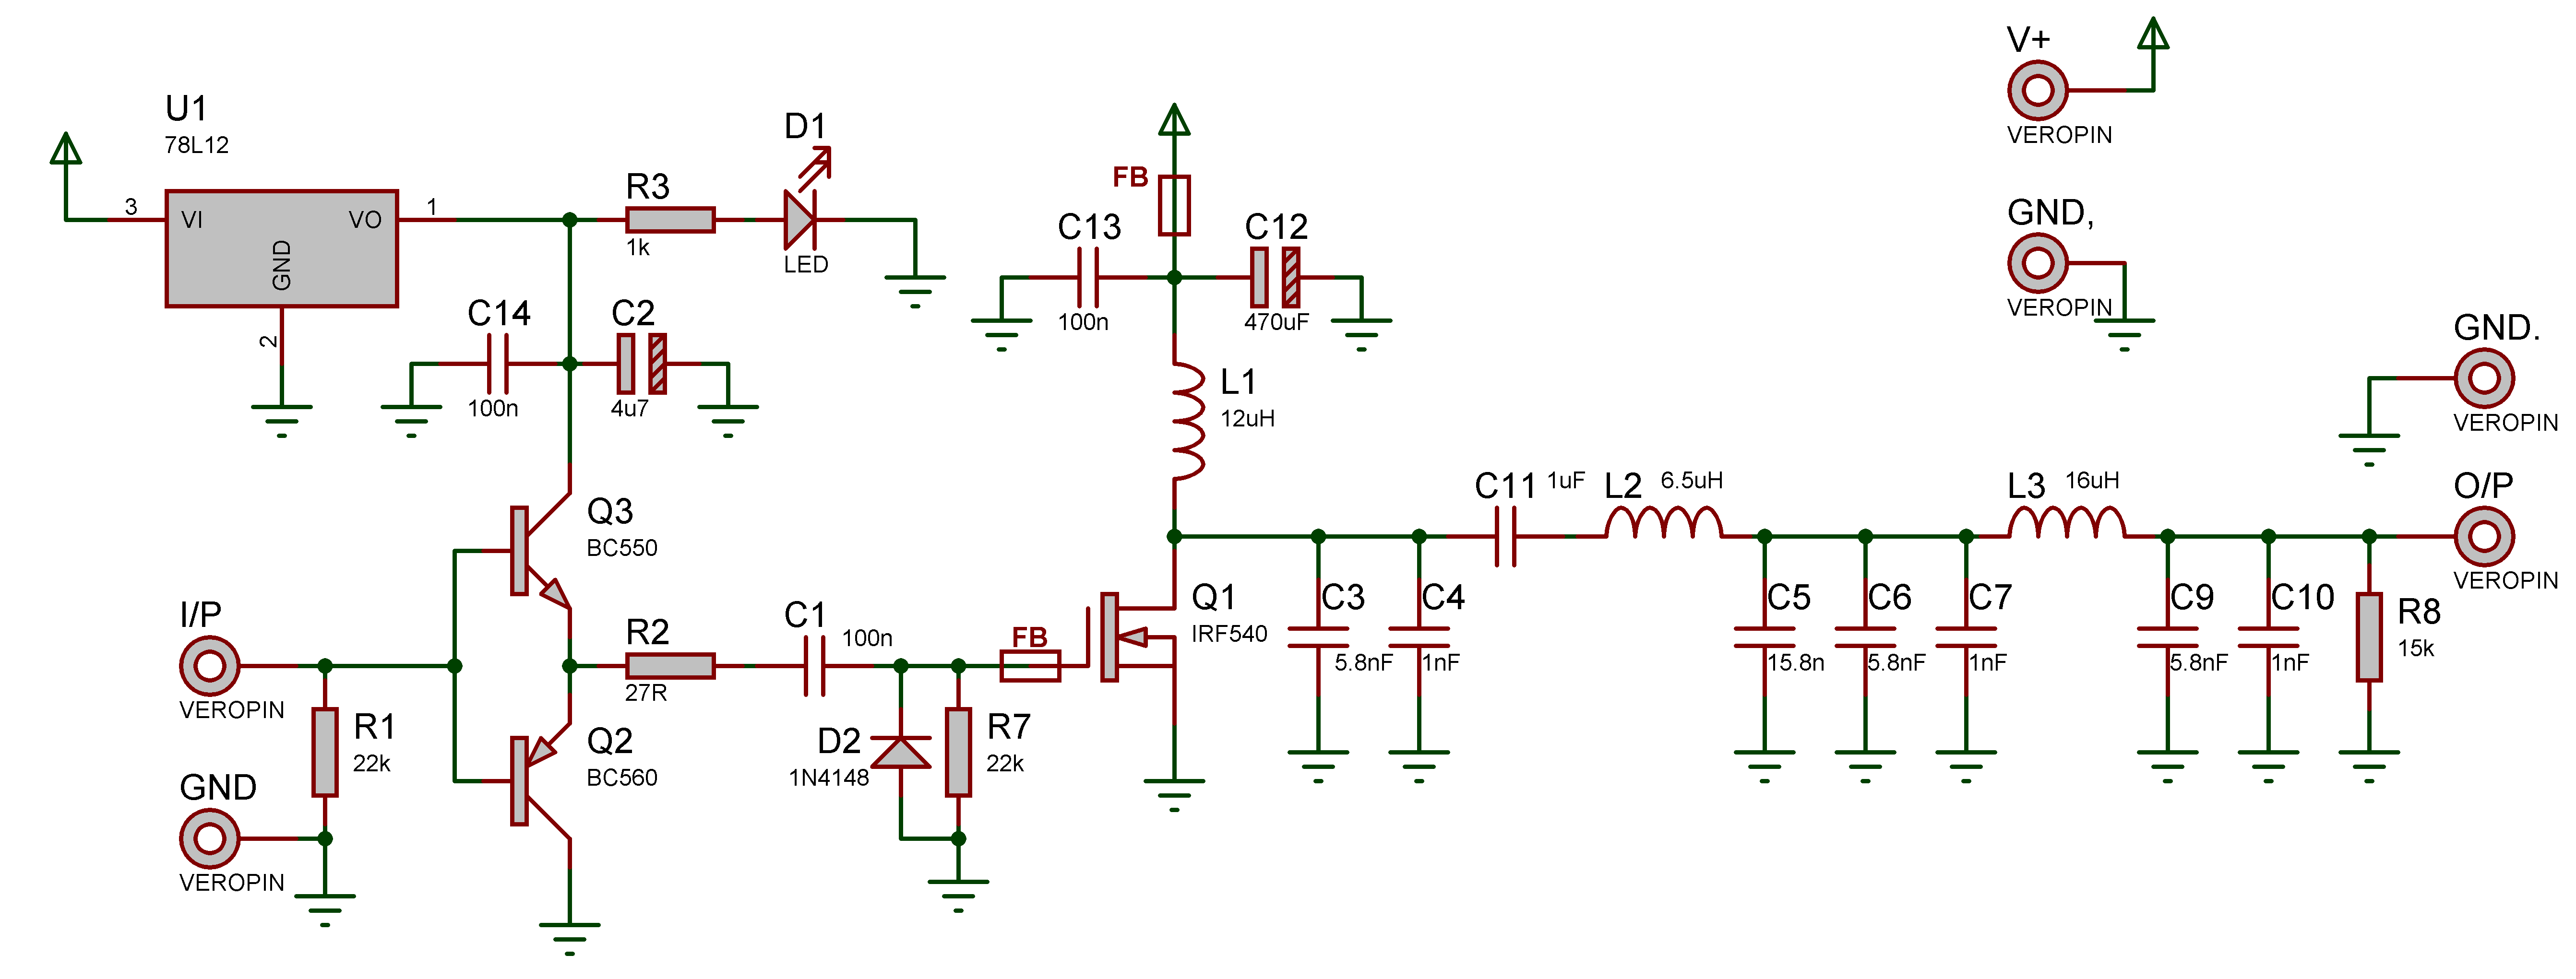 PA Schematic for 472 kHz